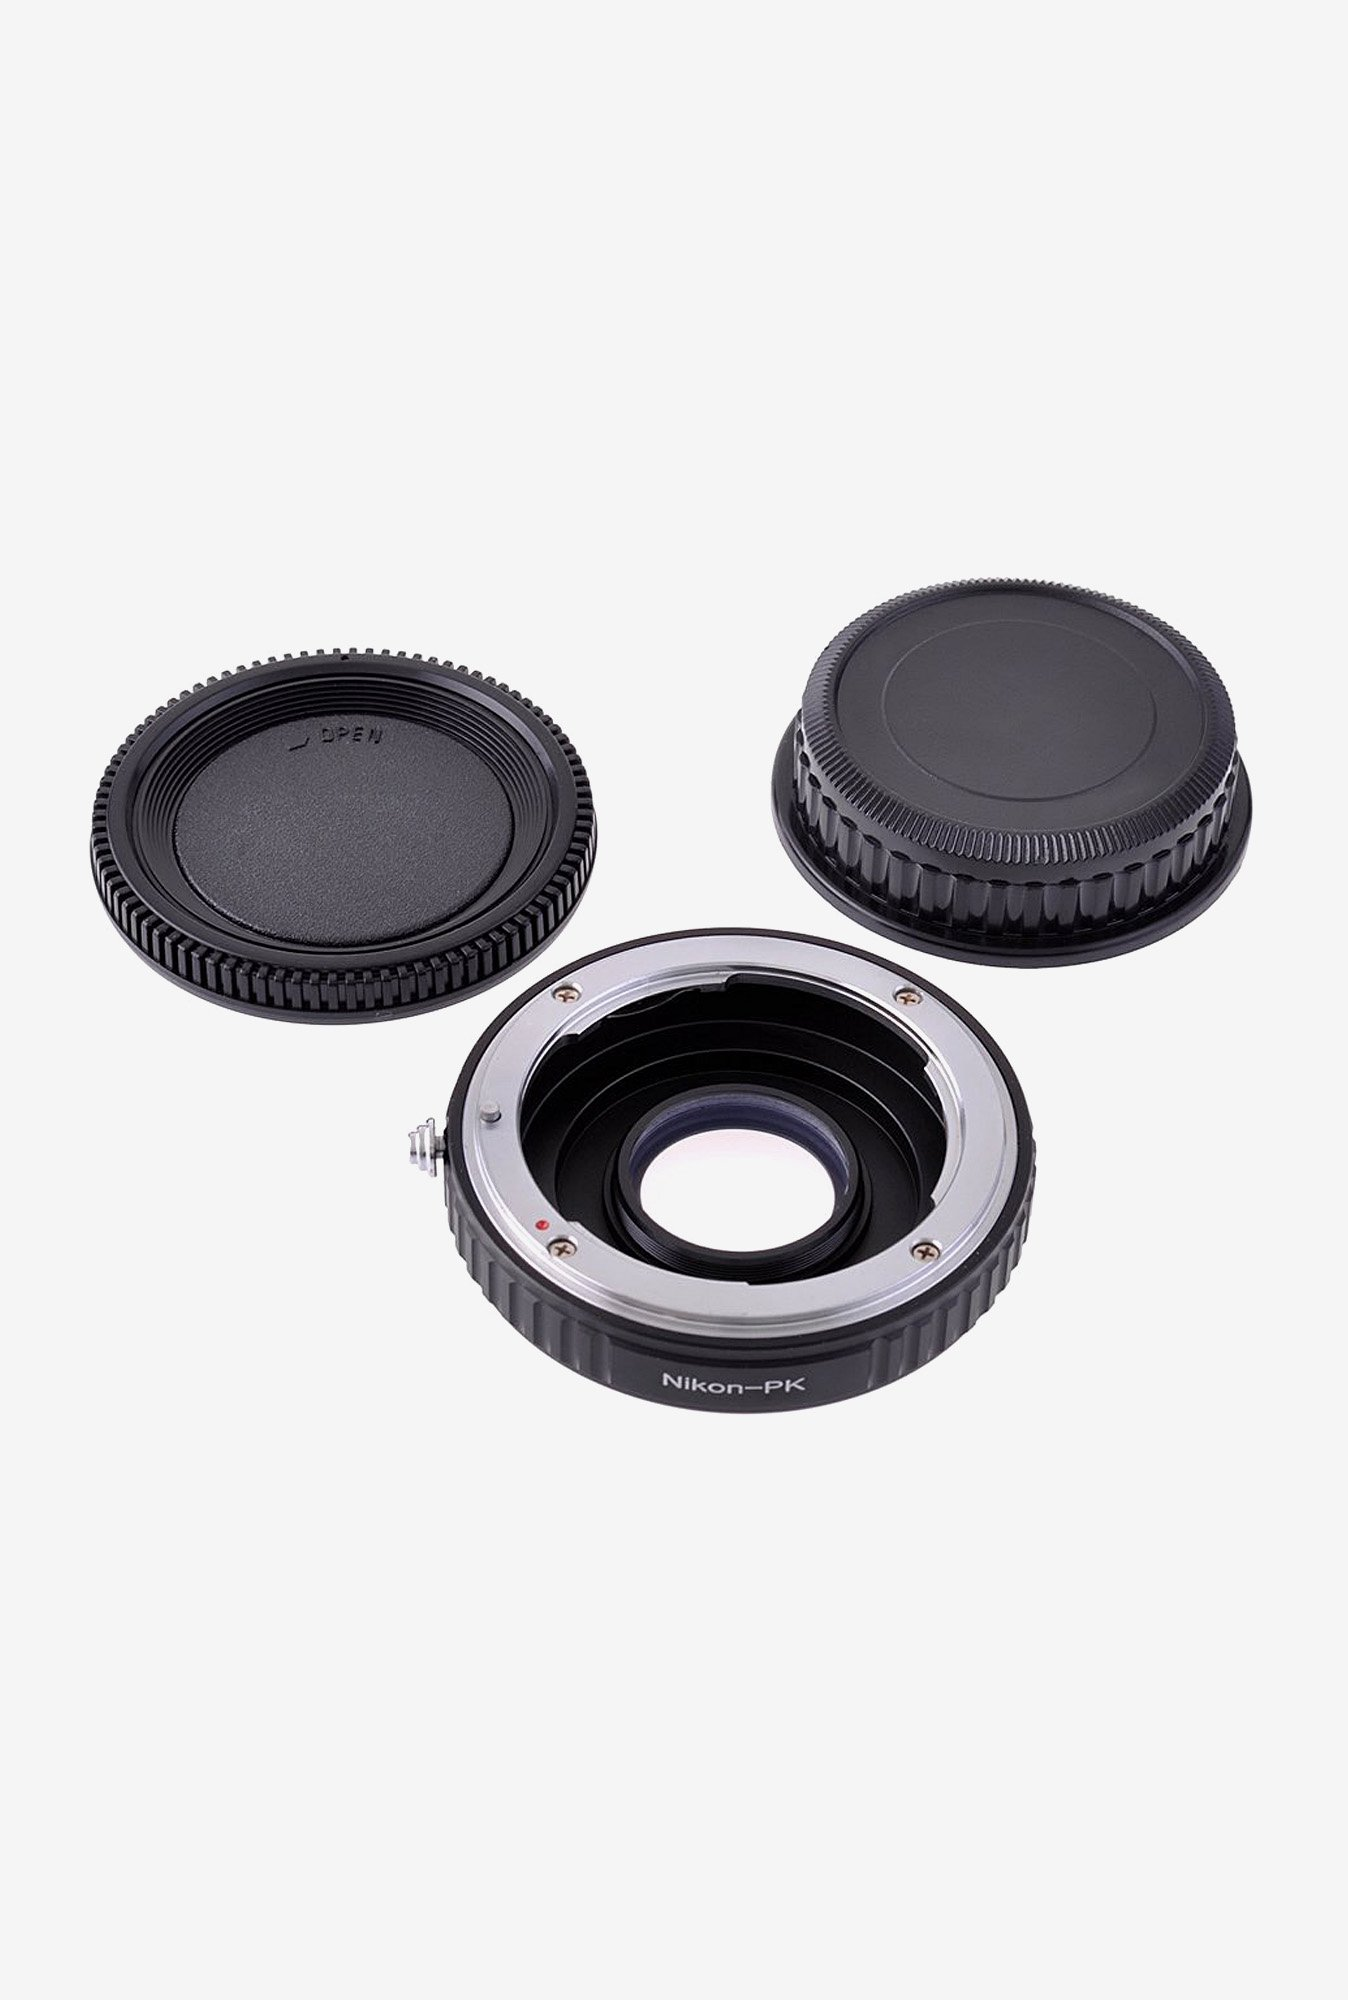 Neewer 10075457 Lens Mount Adapter with Optical Glass